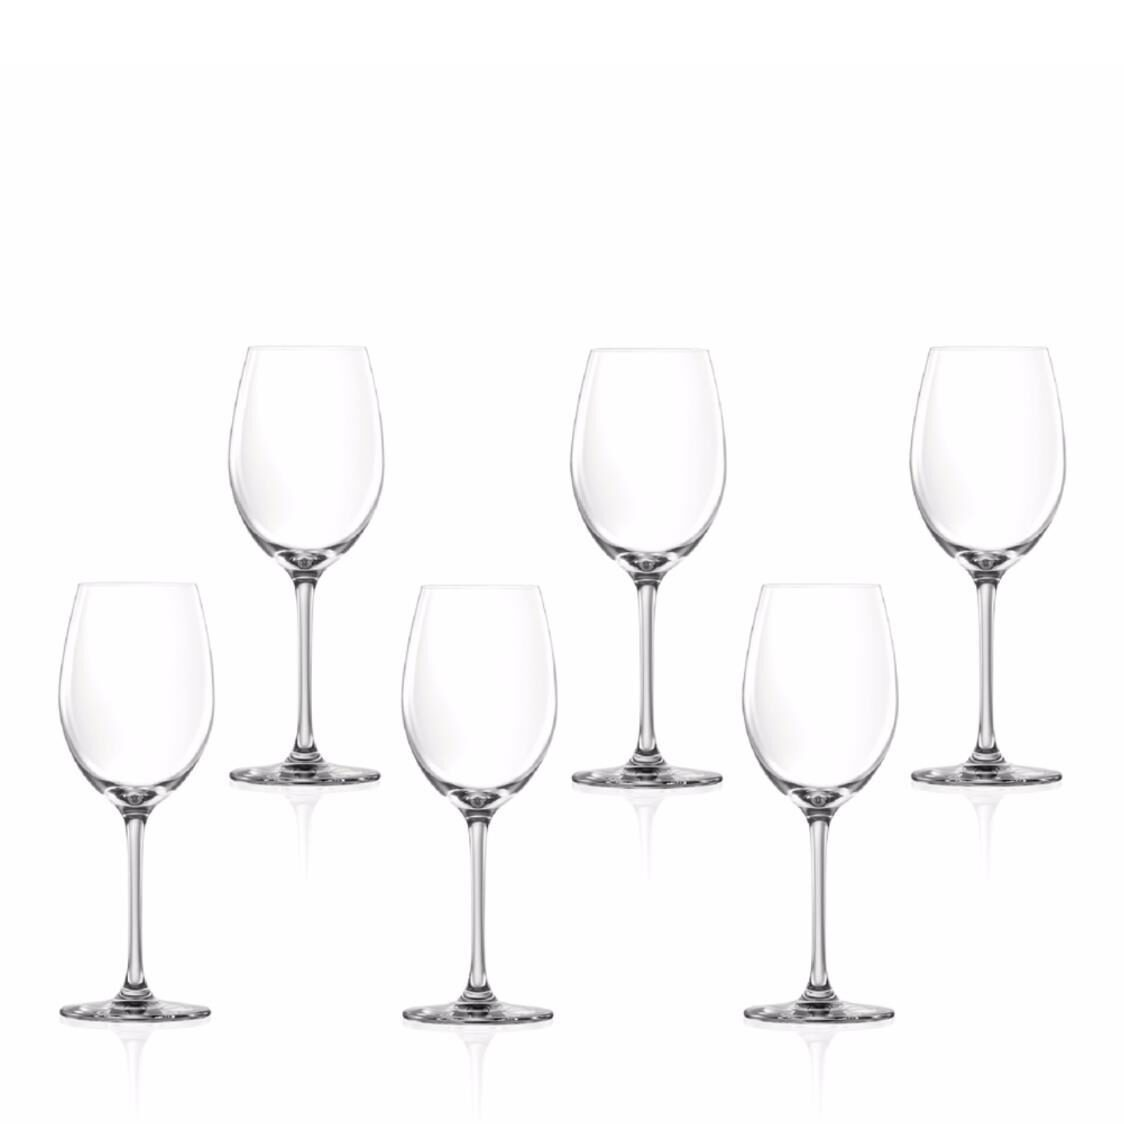 Bangkok Bliss Chardonnay 6pcs Set